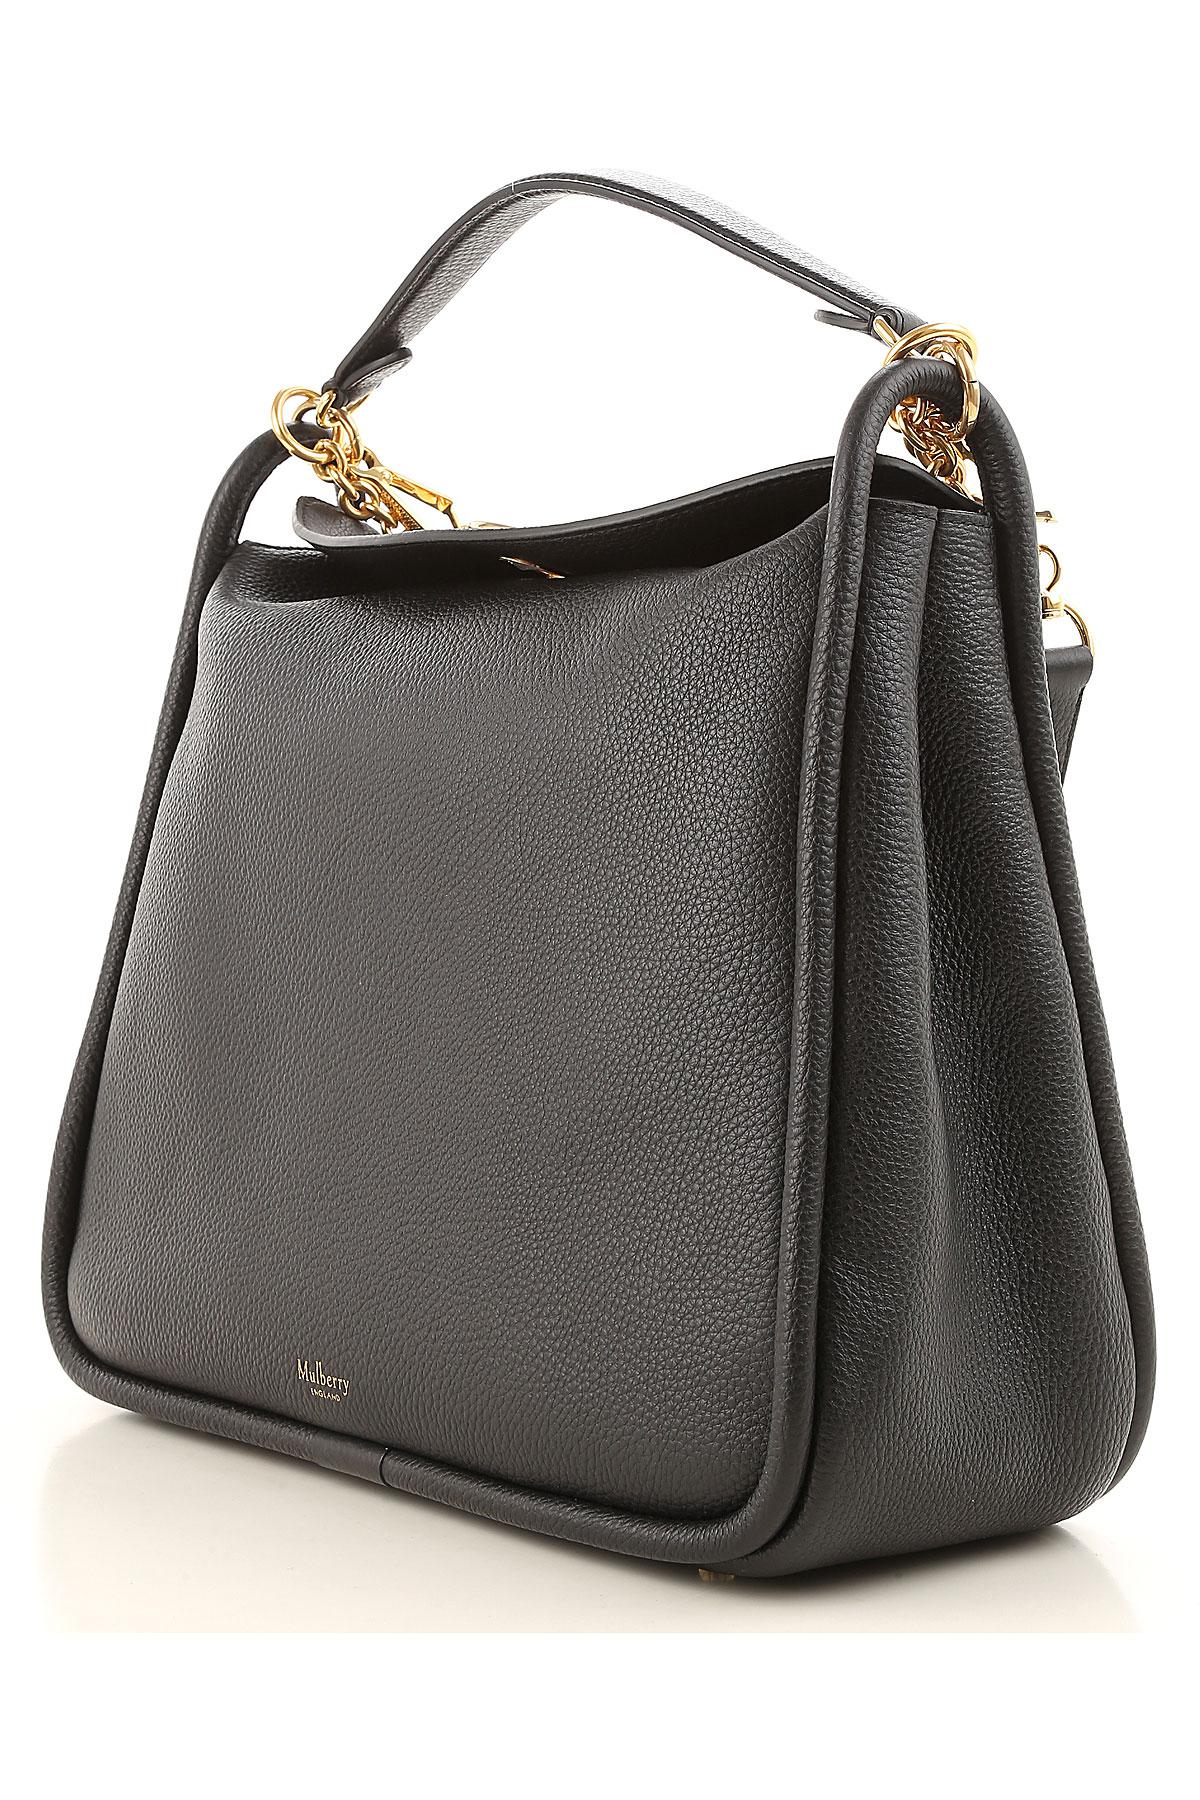 522e8e503ef3 Mulberry - Black Tote Bag On Sale - Lyst. View fullscreen